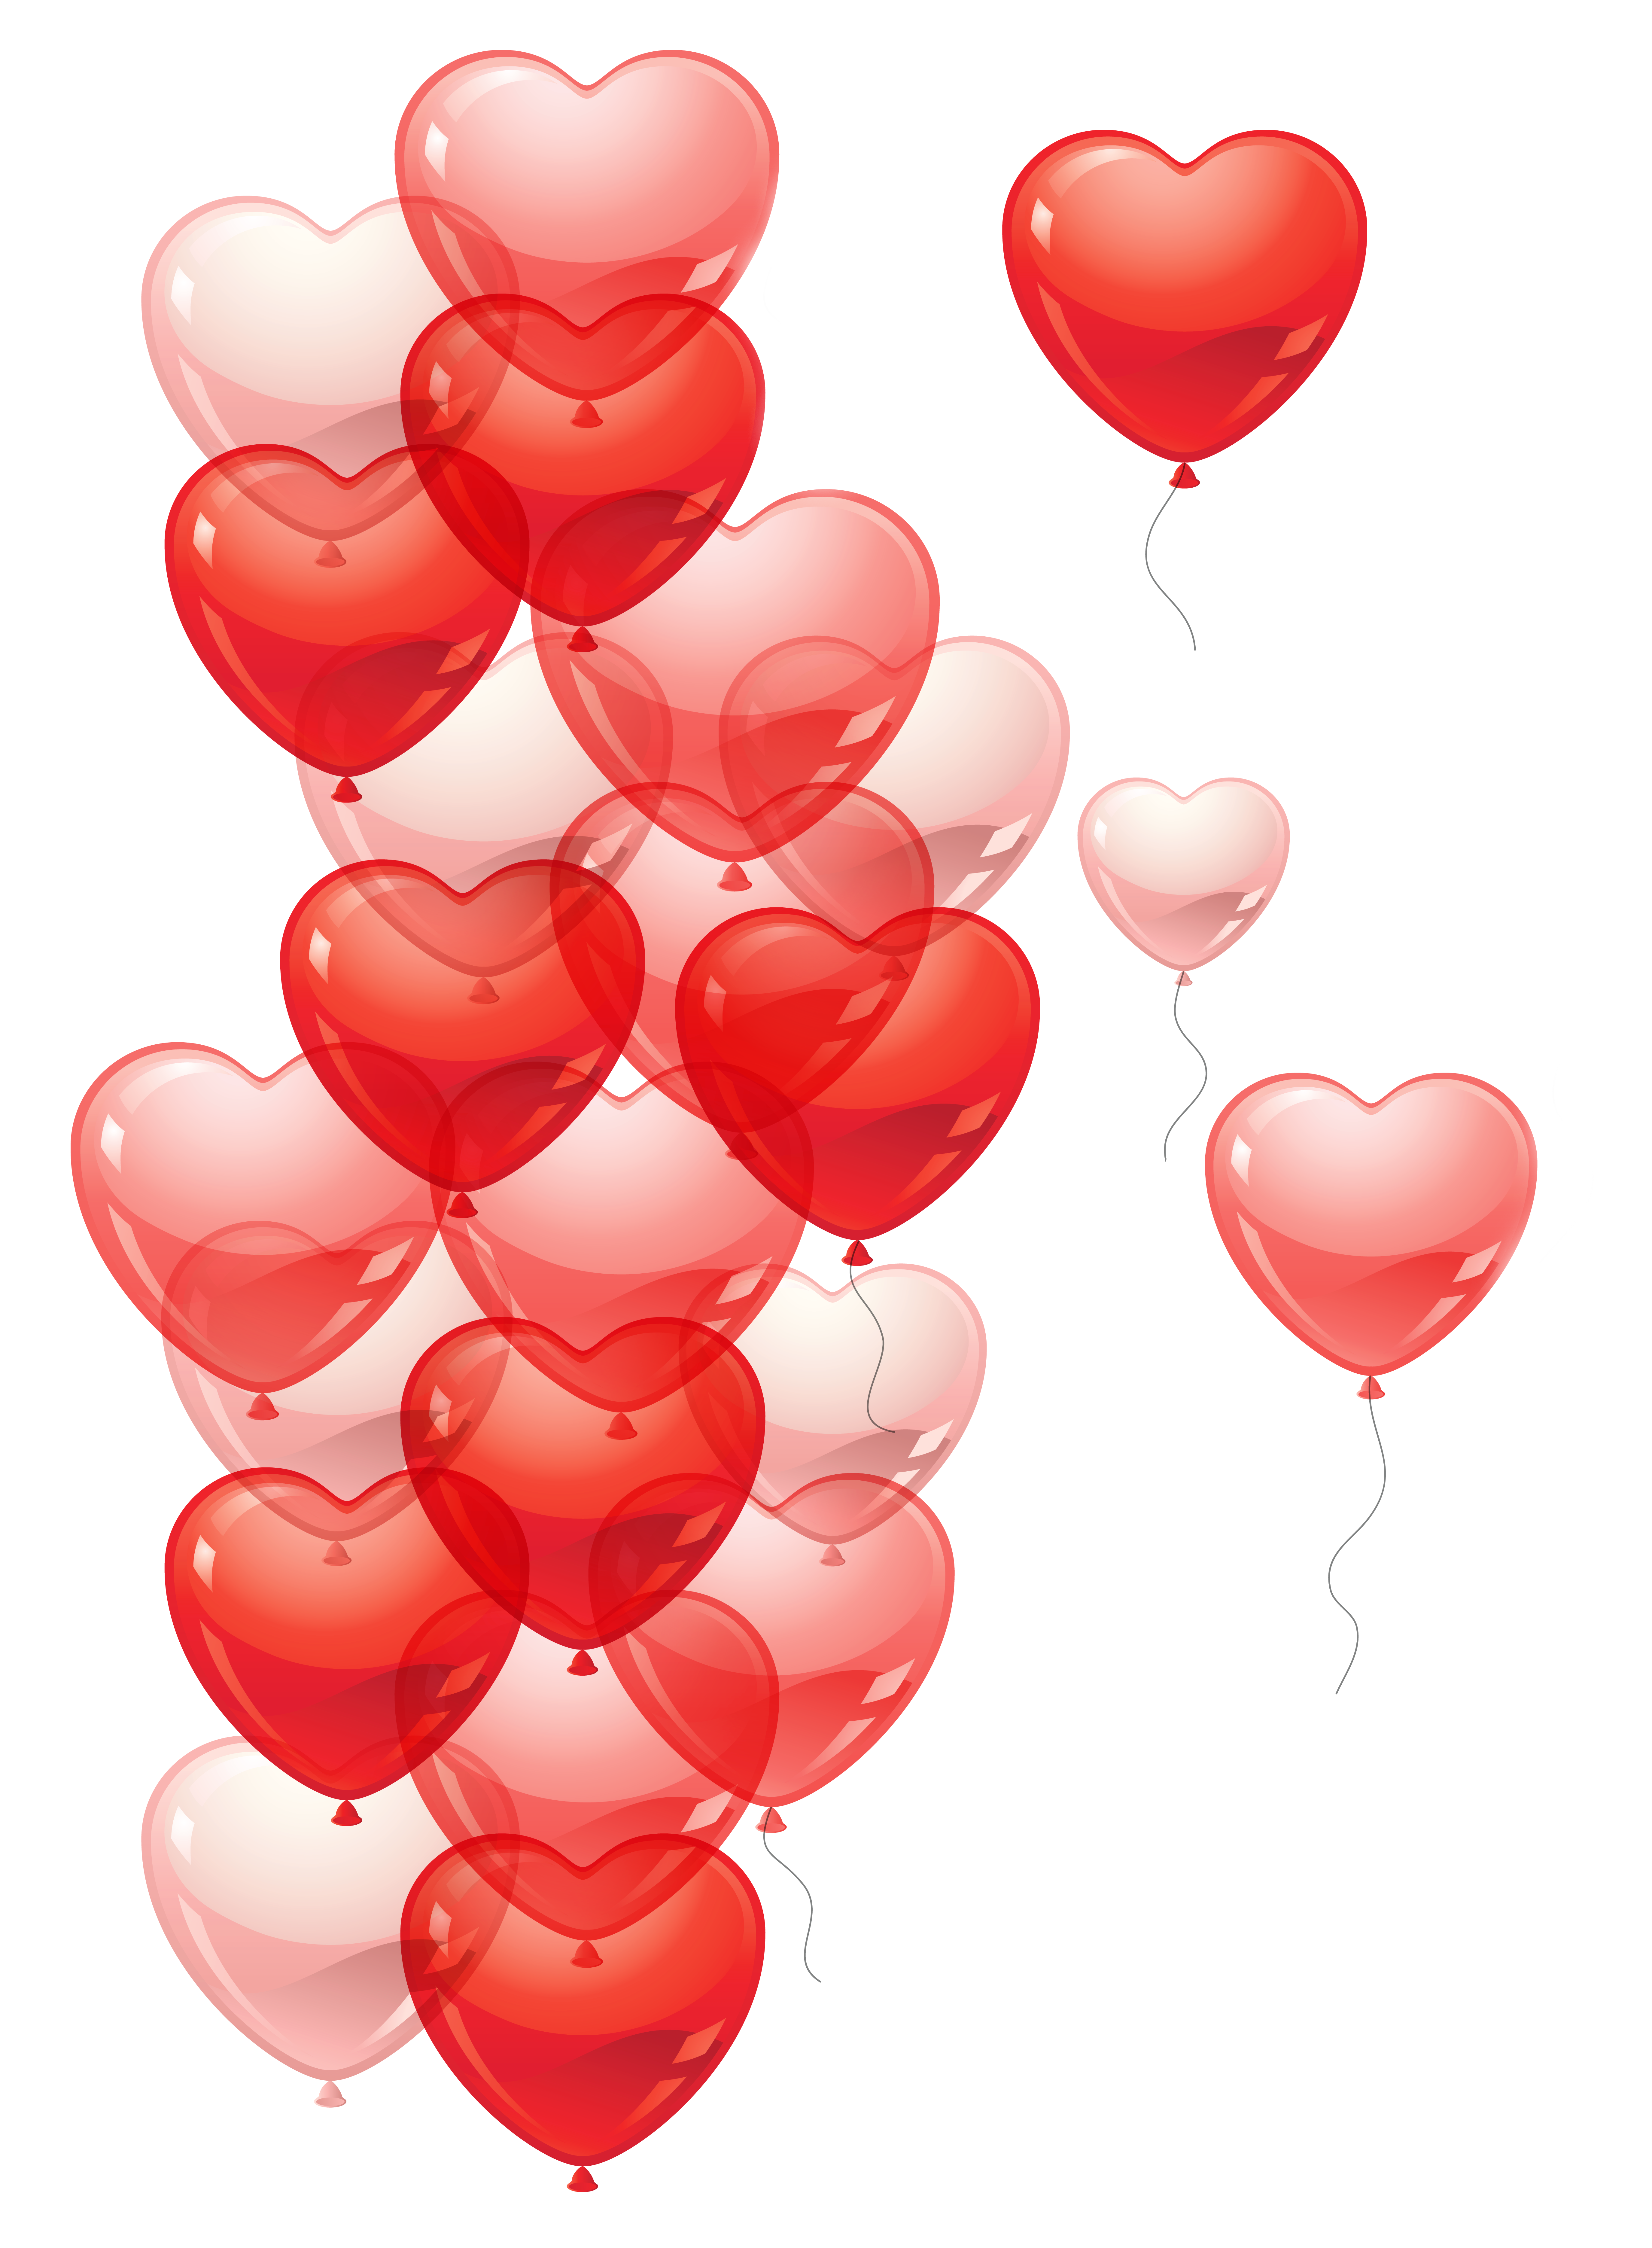 Heart bubbles clipart clip art black and white Transparent Heart Baloons PNG Picture | Gallery Yopriceville - High ... clip art black and white